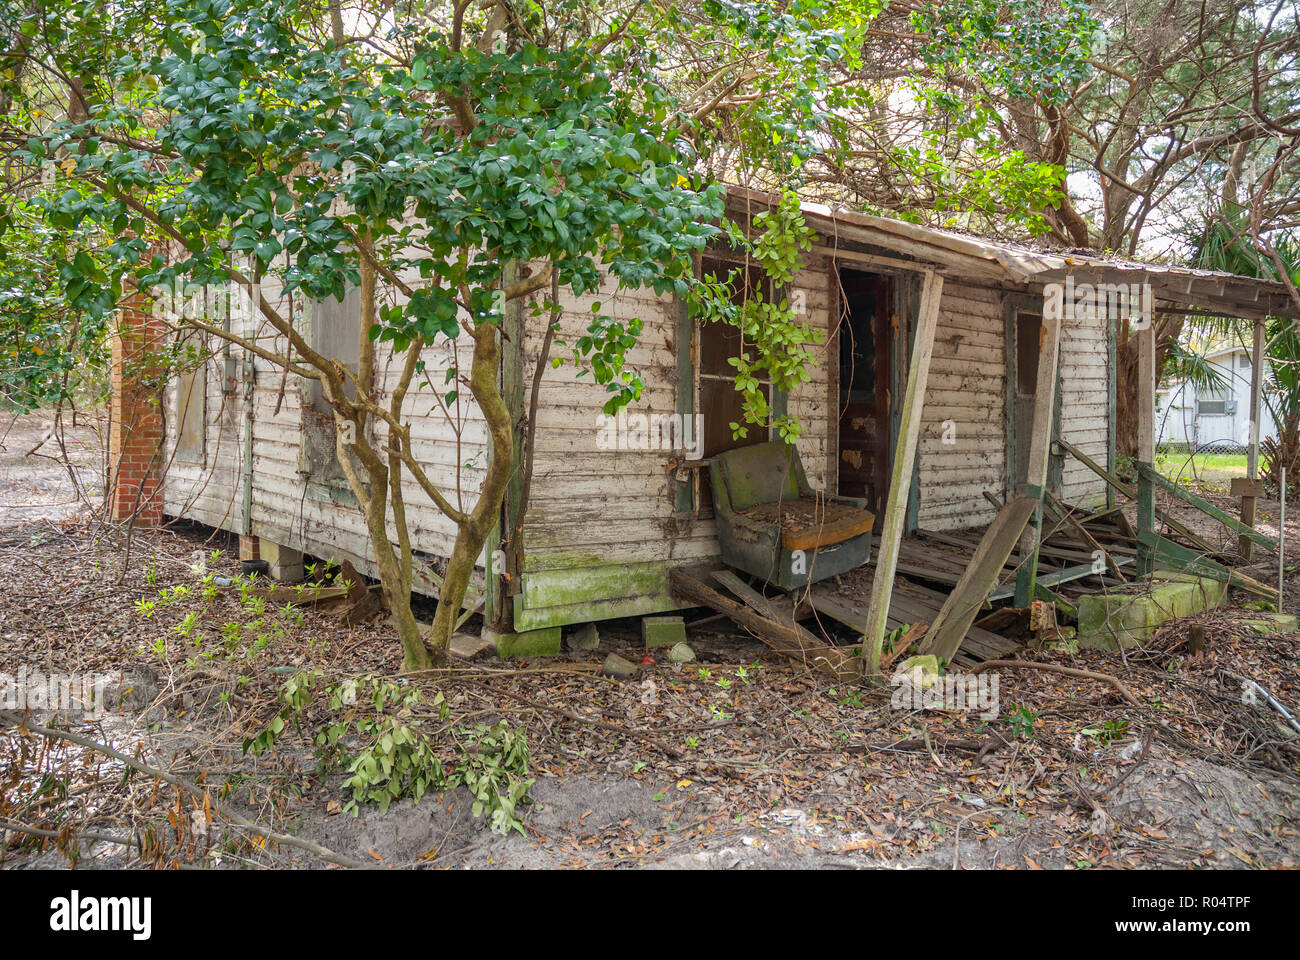 Old abandoned house in a small town in North Central Florida. - Stock Image